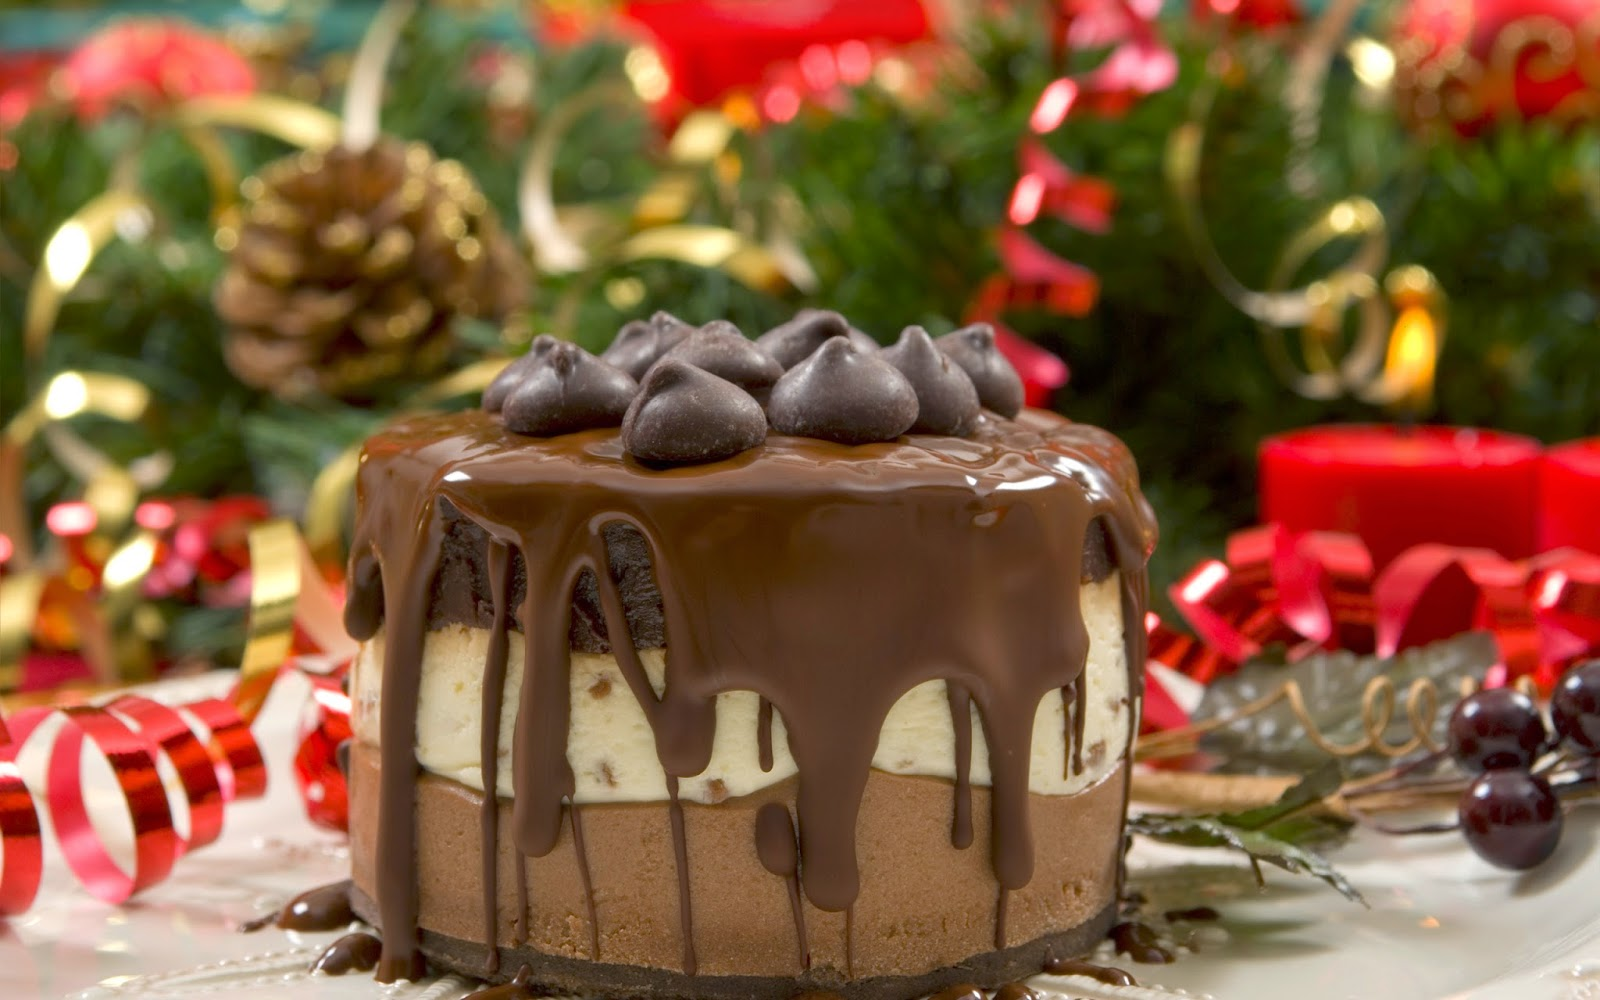 Allinallwalls cake food strawberry hd wallpaper for Pics of christmas desserts